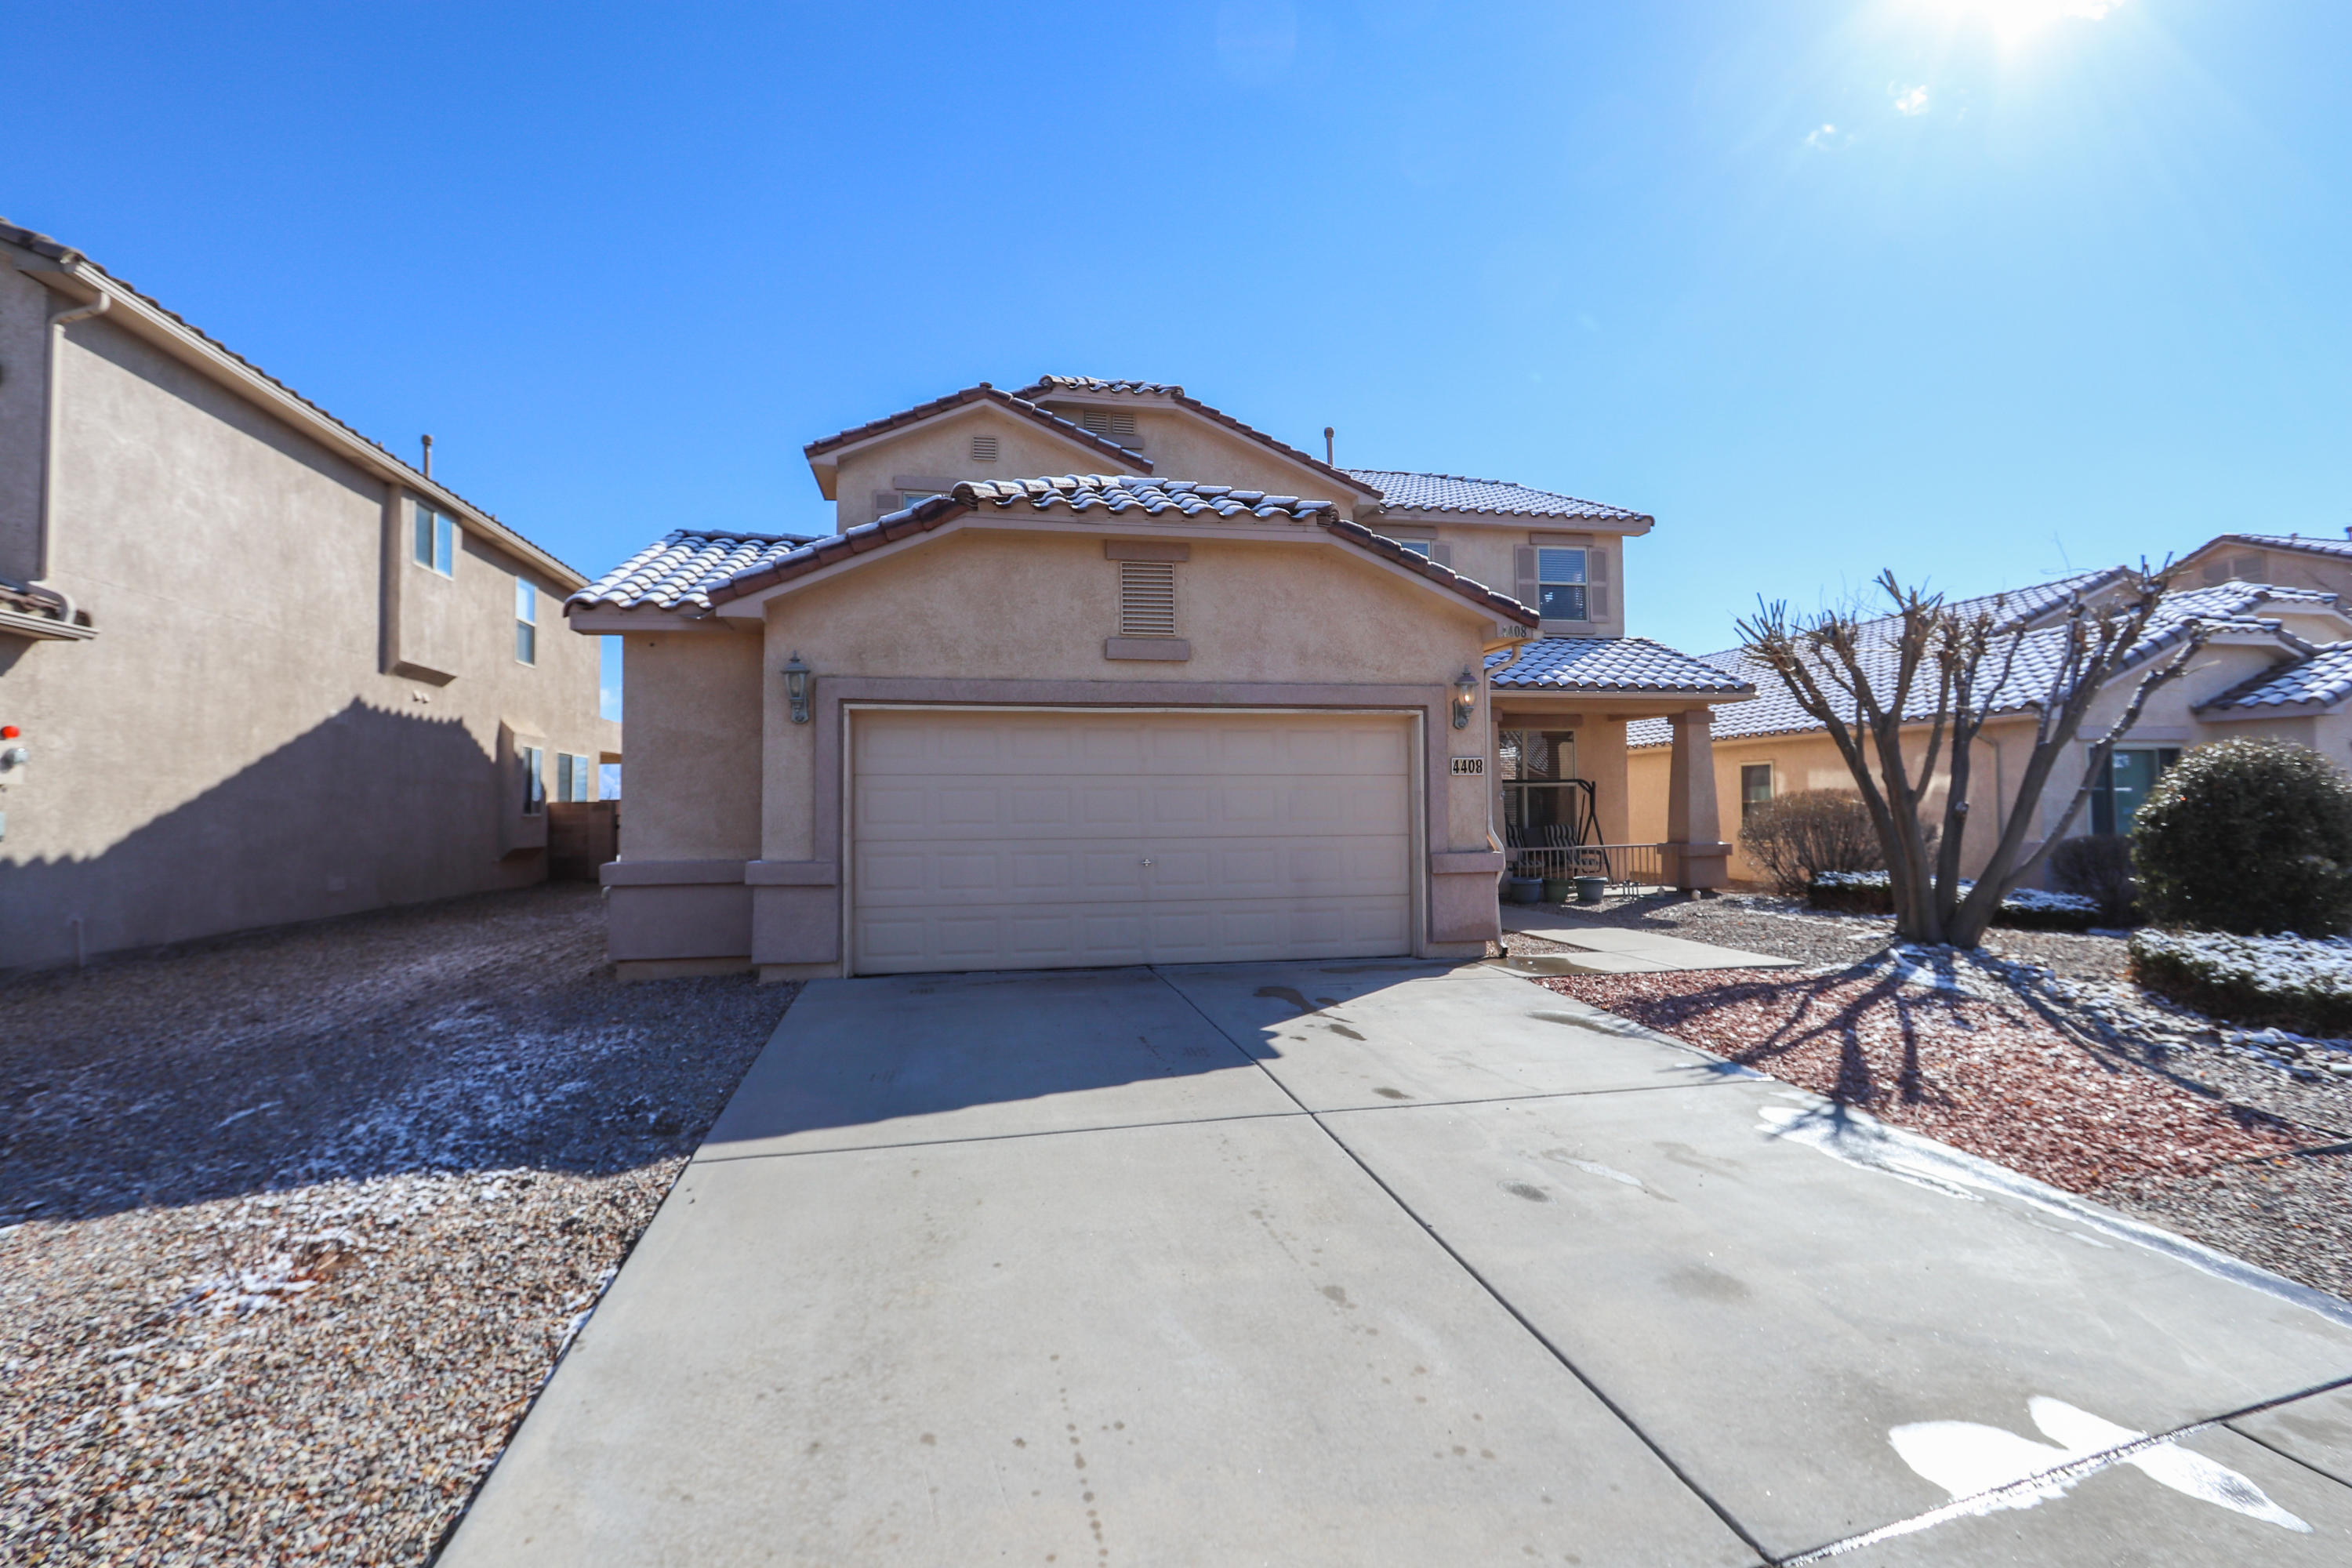 4408 NW Las Crestas Drive, Northwest Albuquerque and Northwest Heights, New Mexico